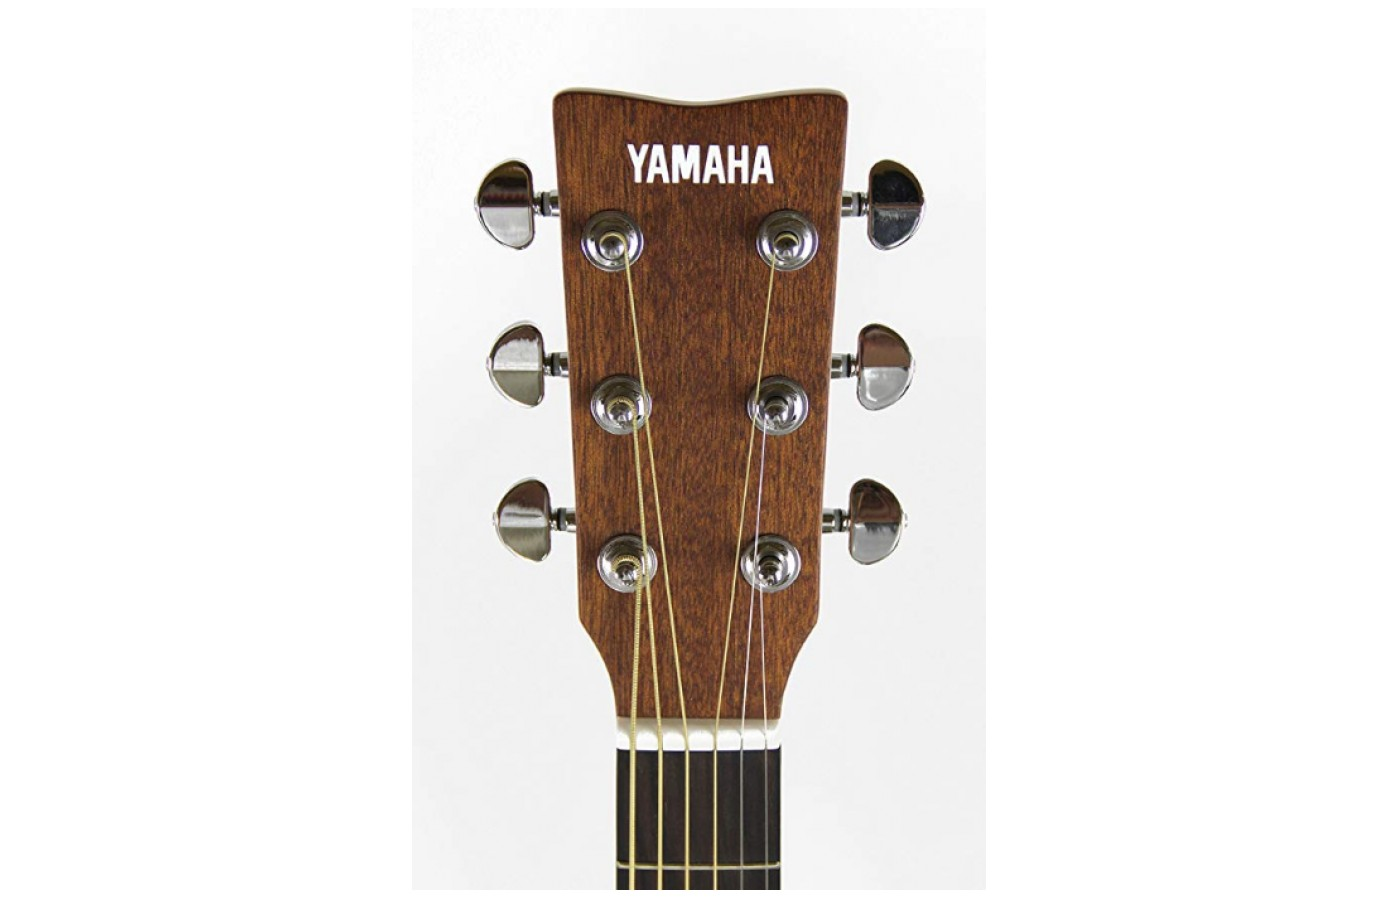 The ergonomics for this guitar make it easy to use and comfortable.